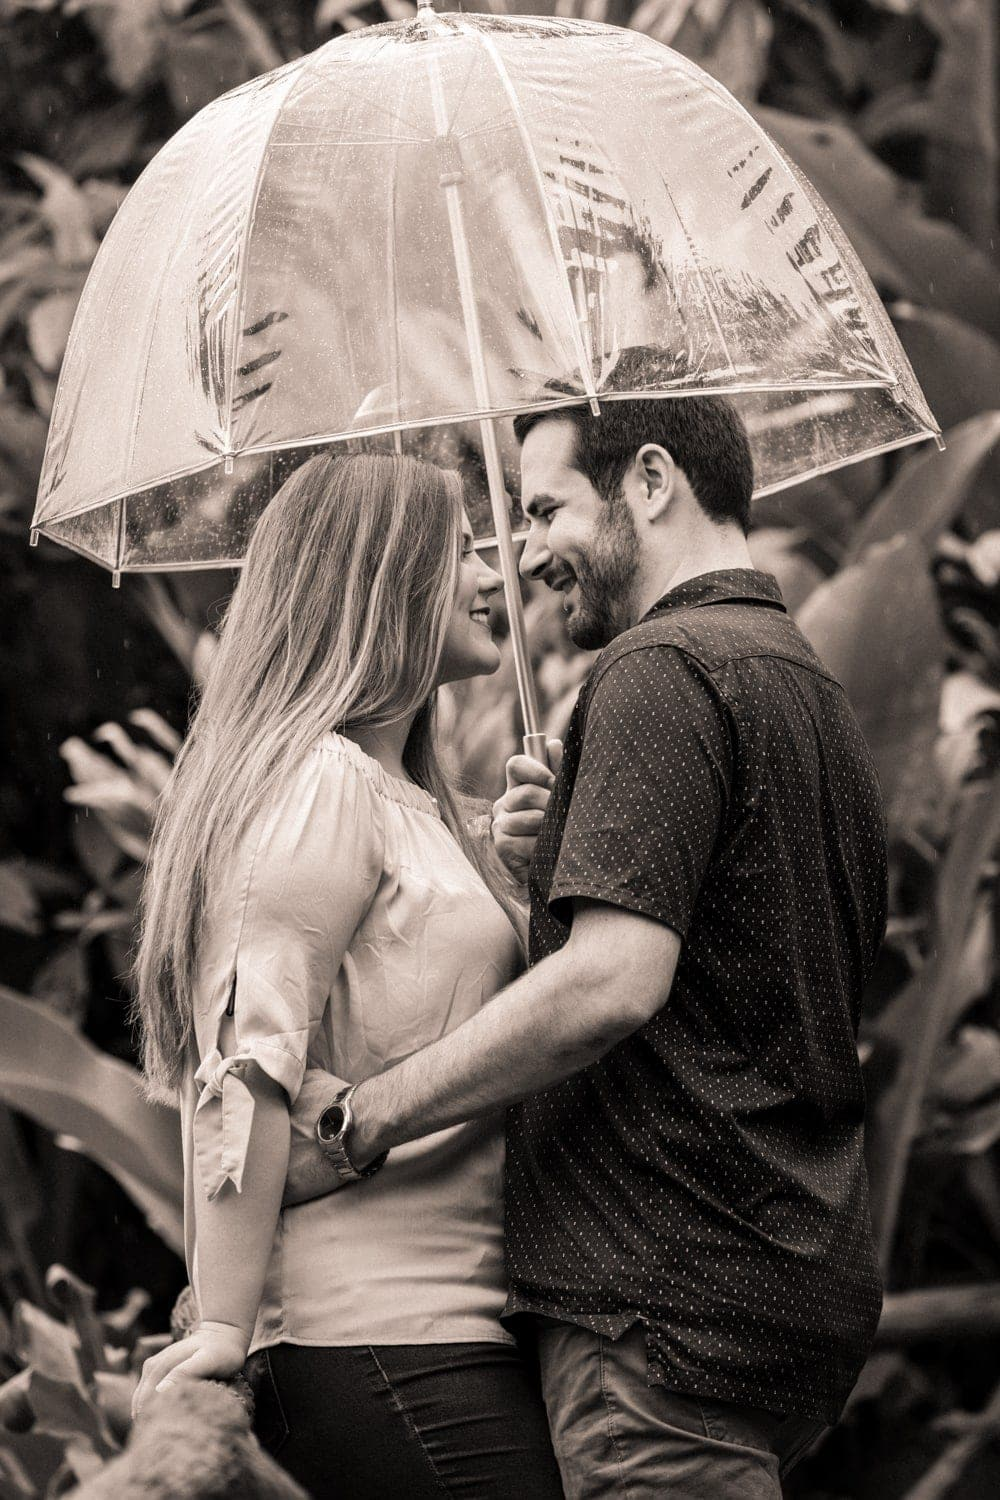 Lovers share an intimate moment under umbrellas during Costa Rica engagement session.